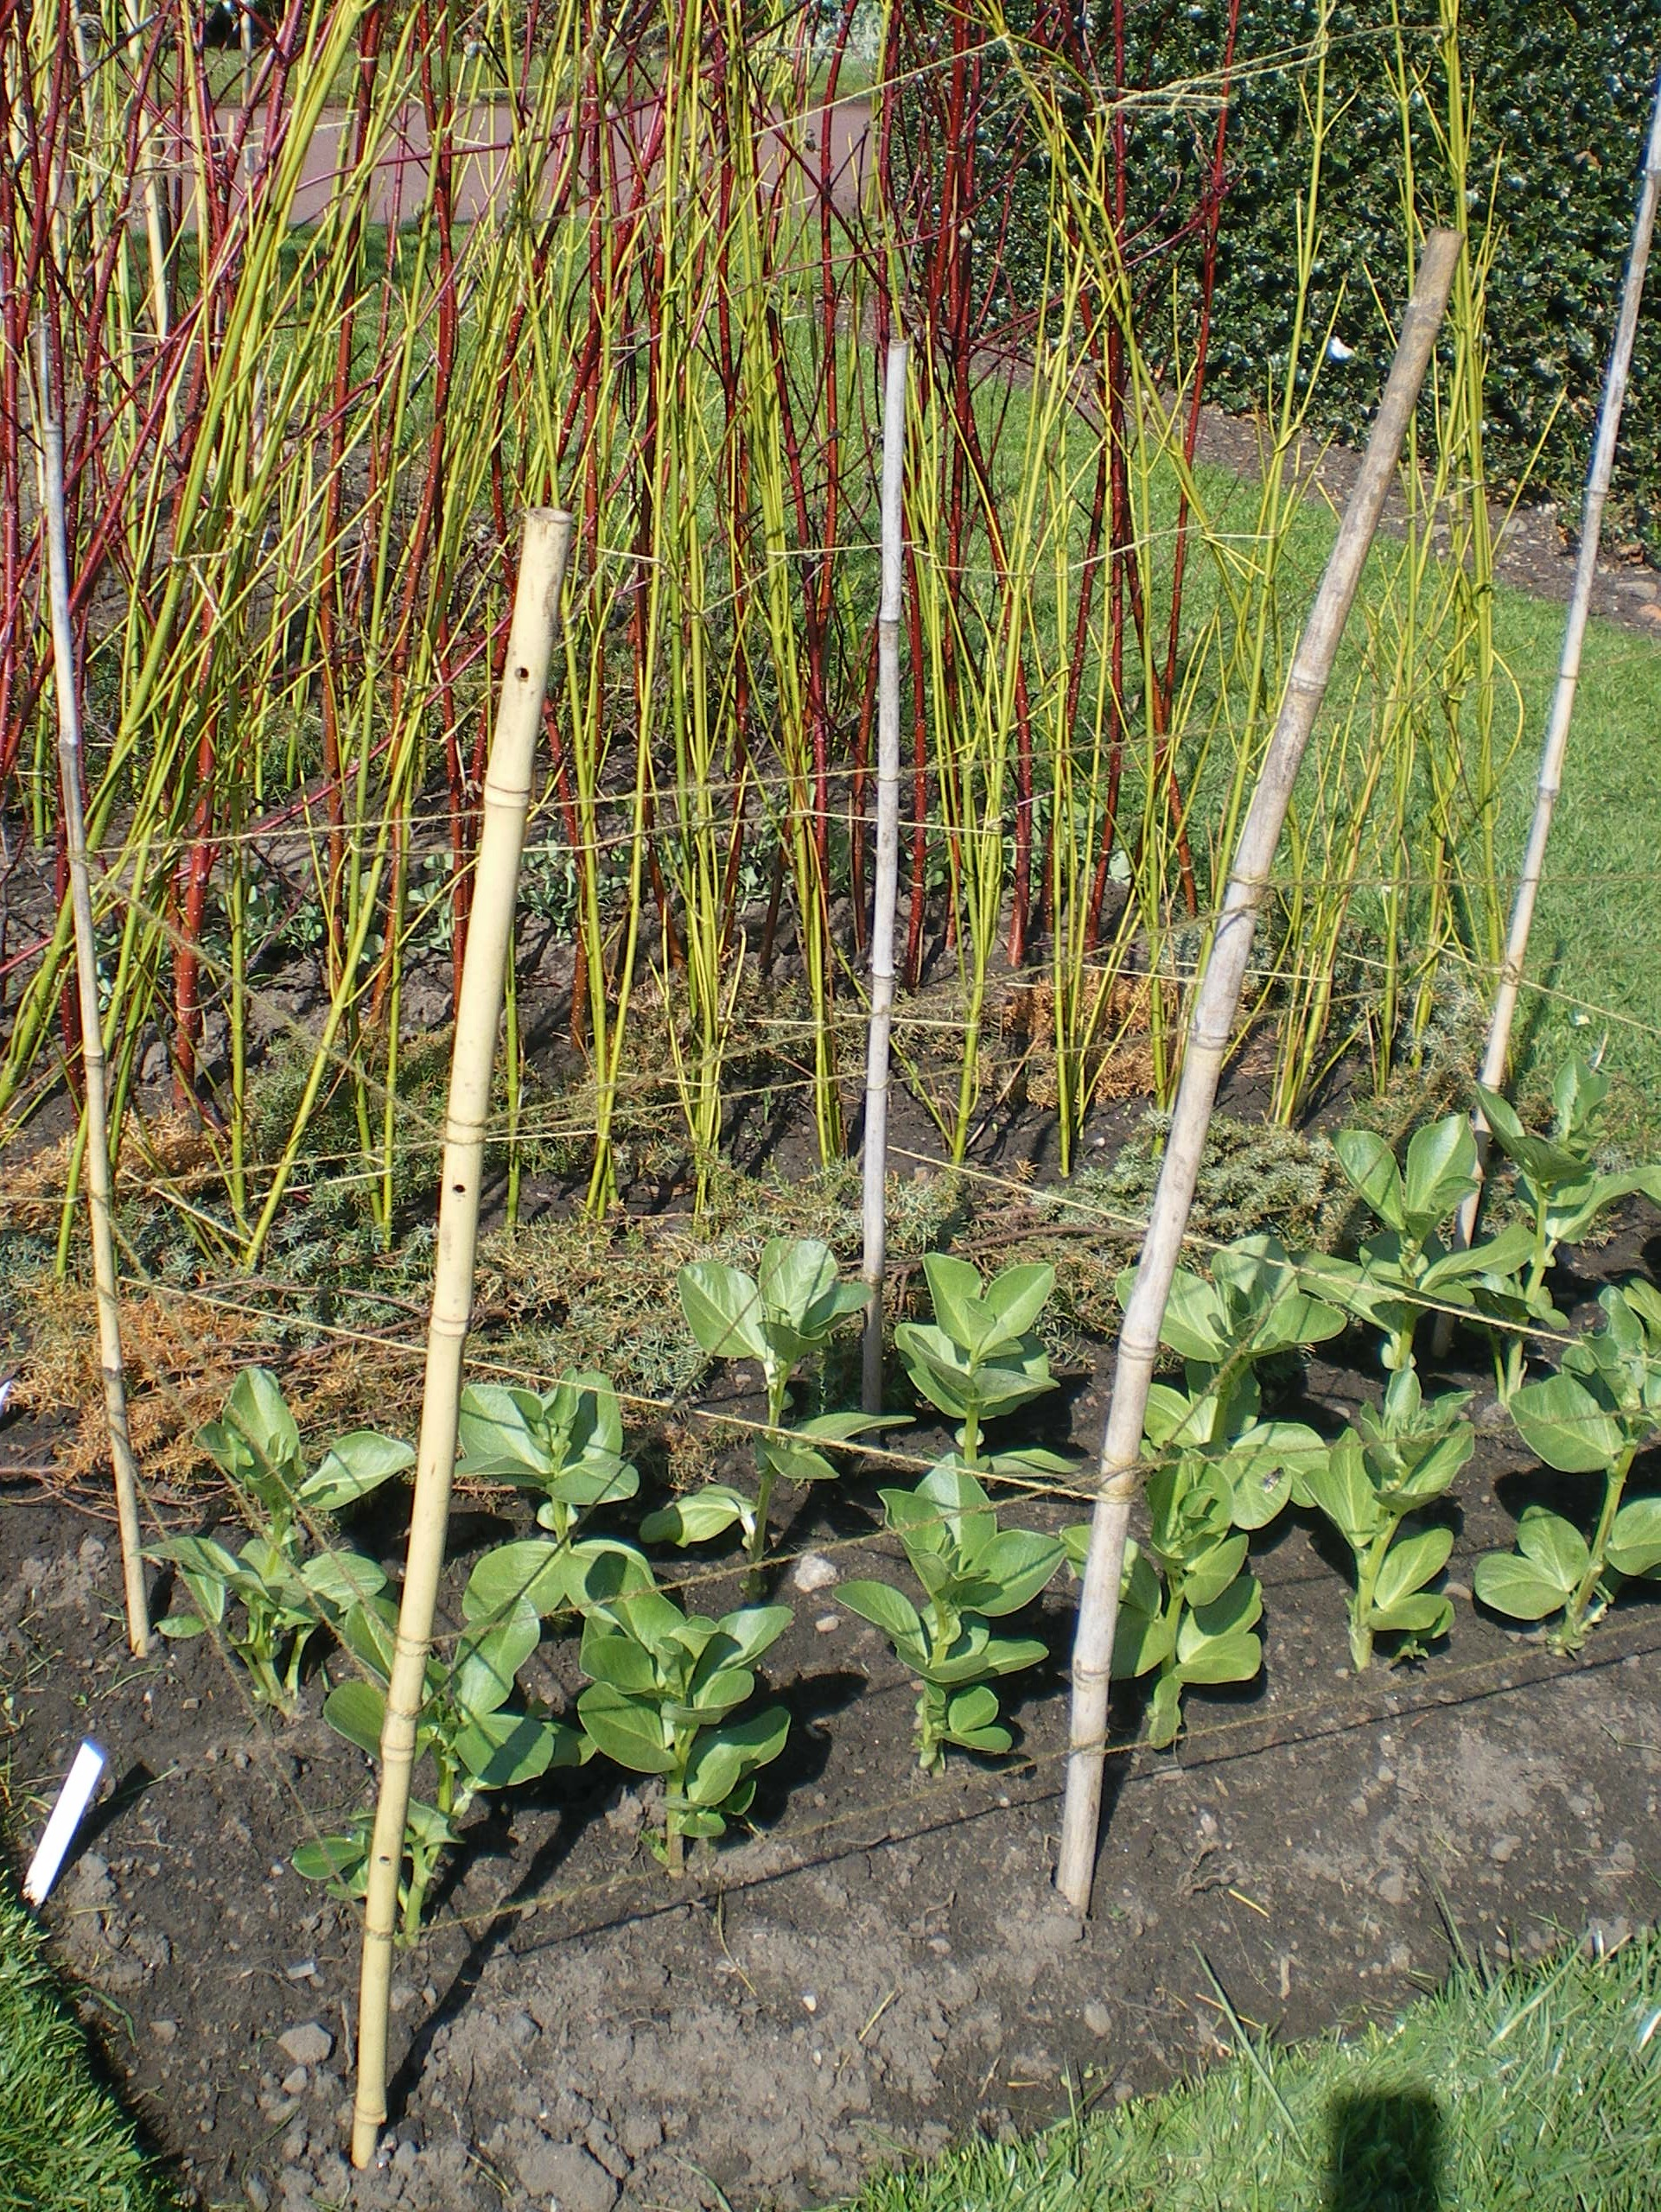 Beans Plant Images Image Broad Bean Stakes